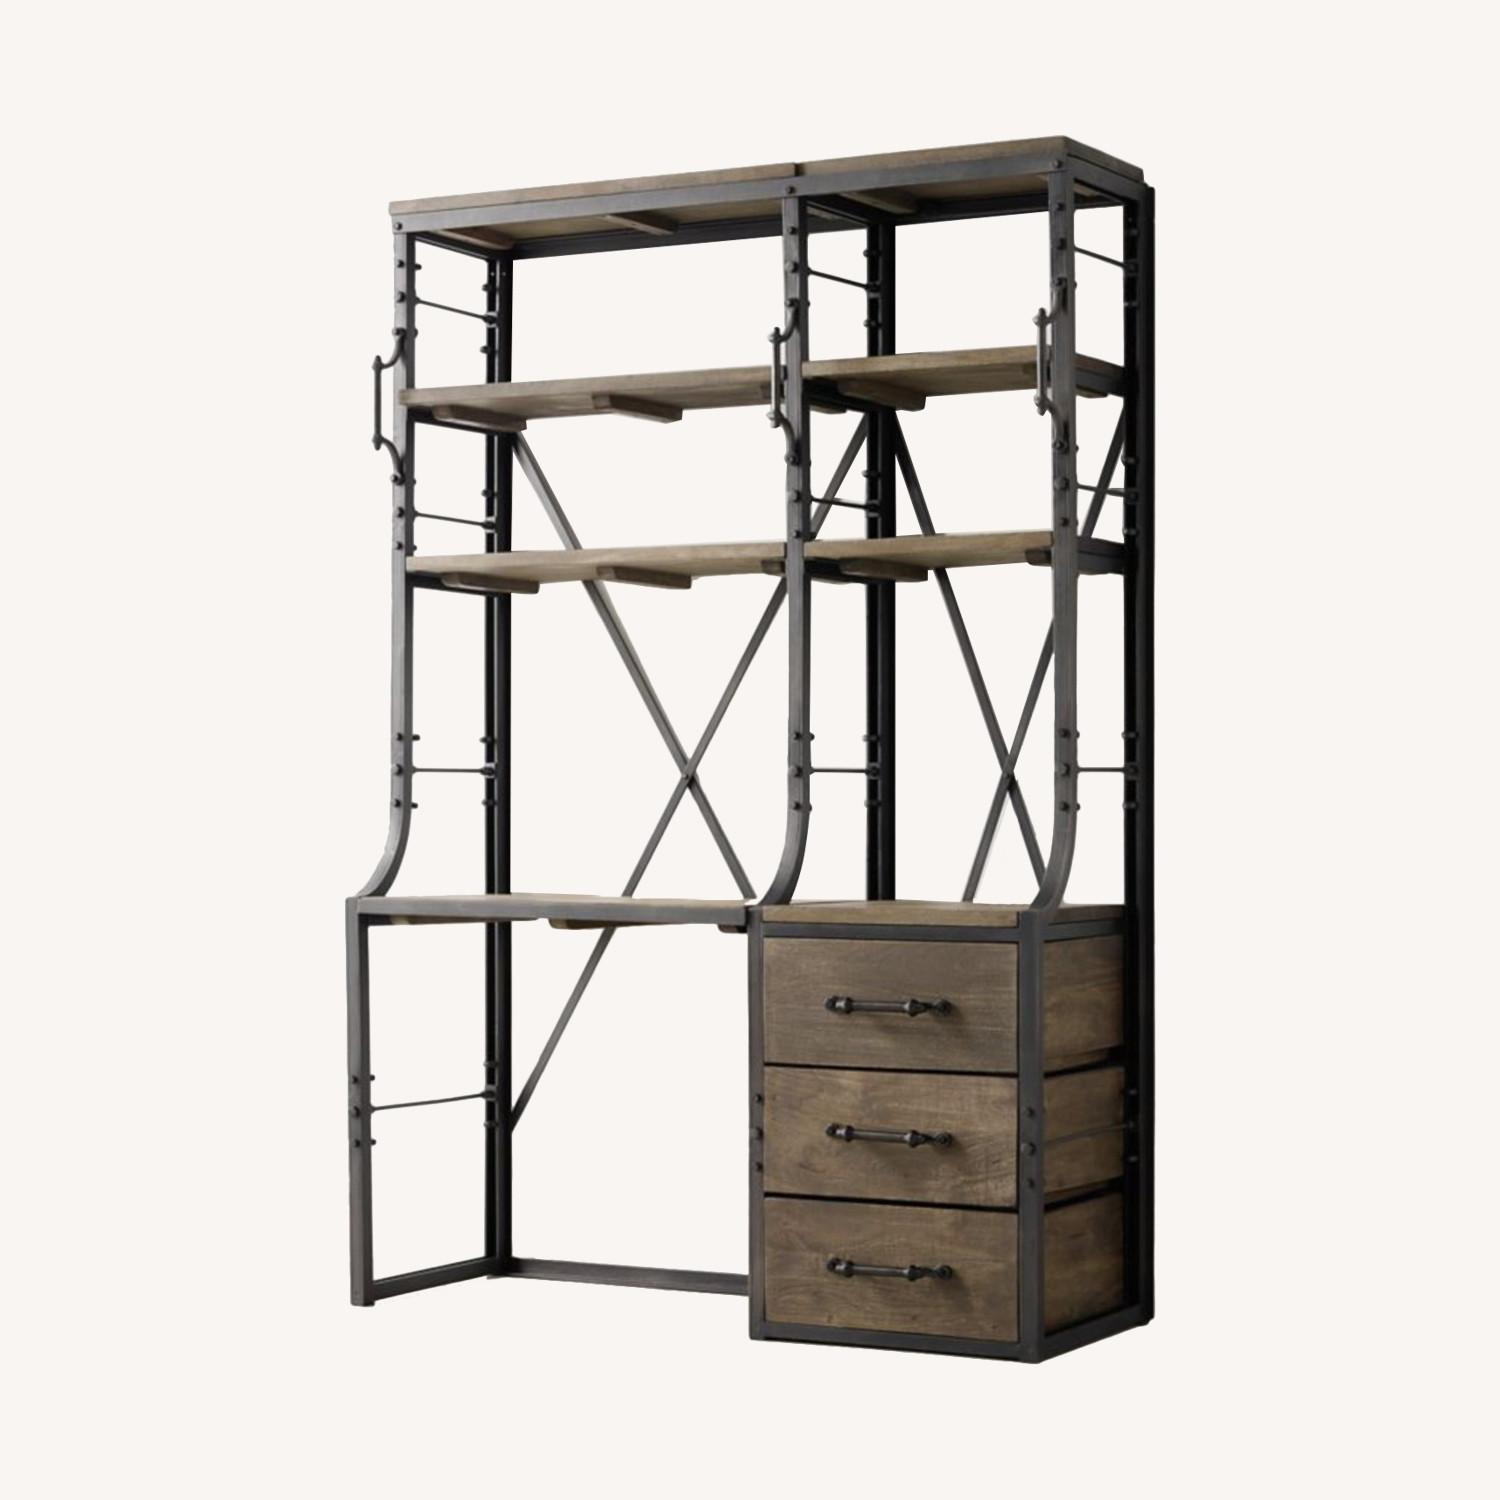 Restoration Hardware French Library Desk with Drawers - image-0